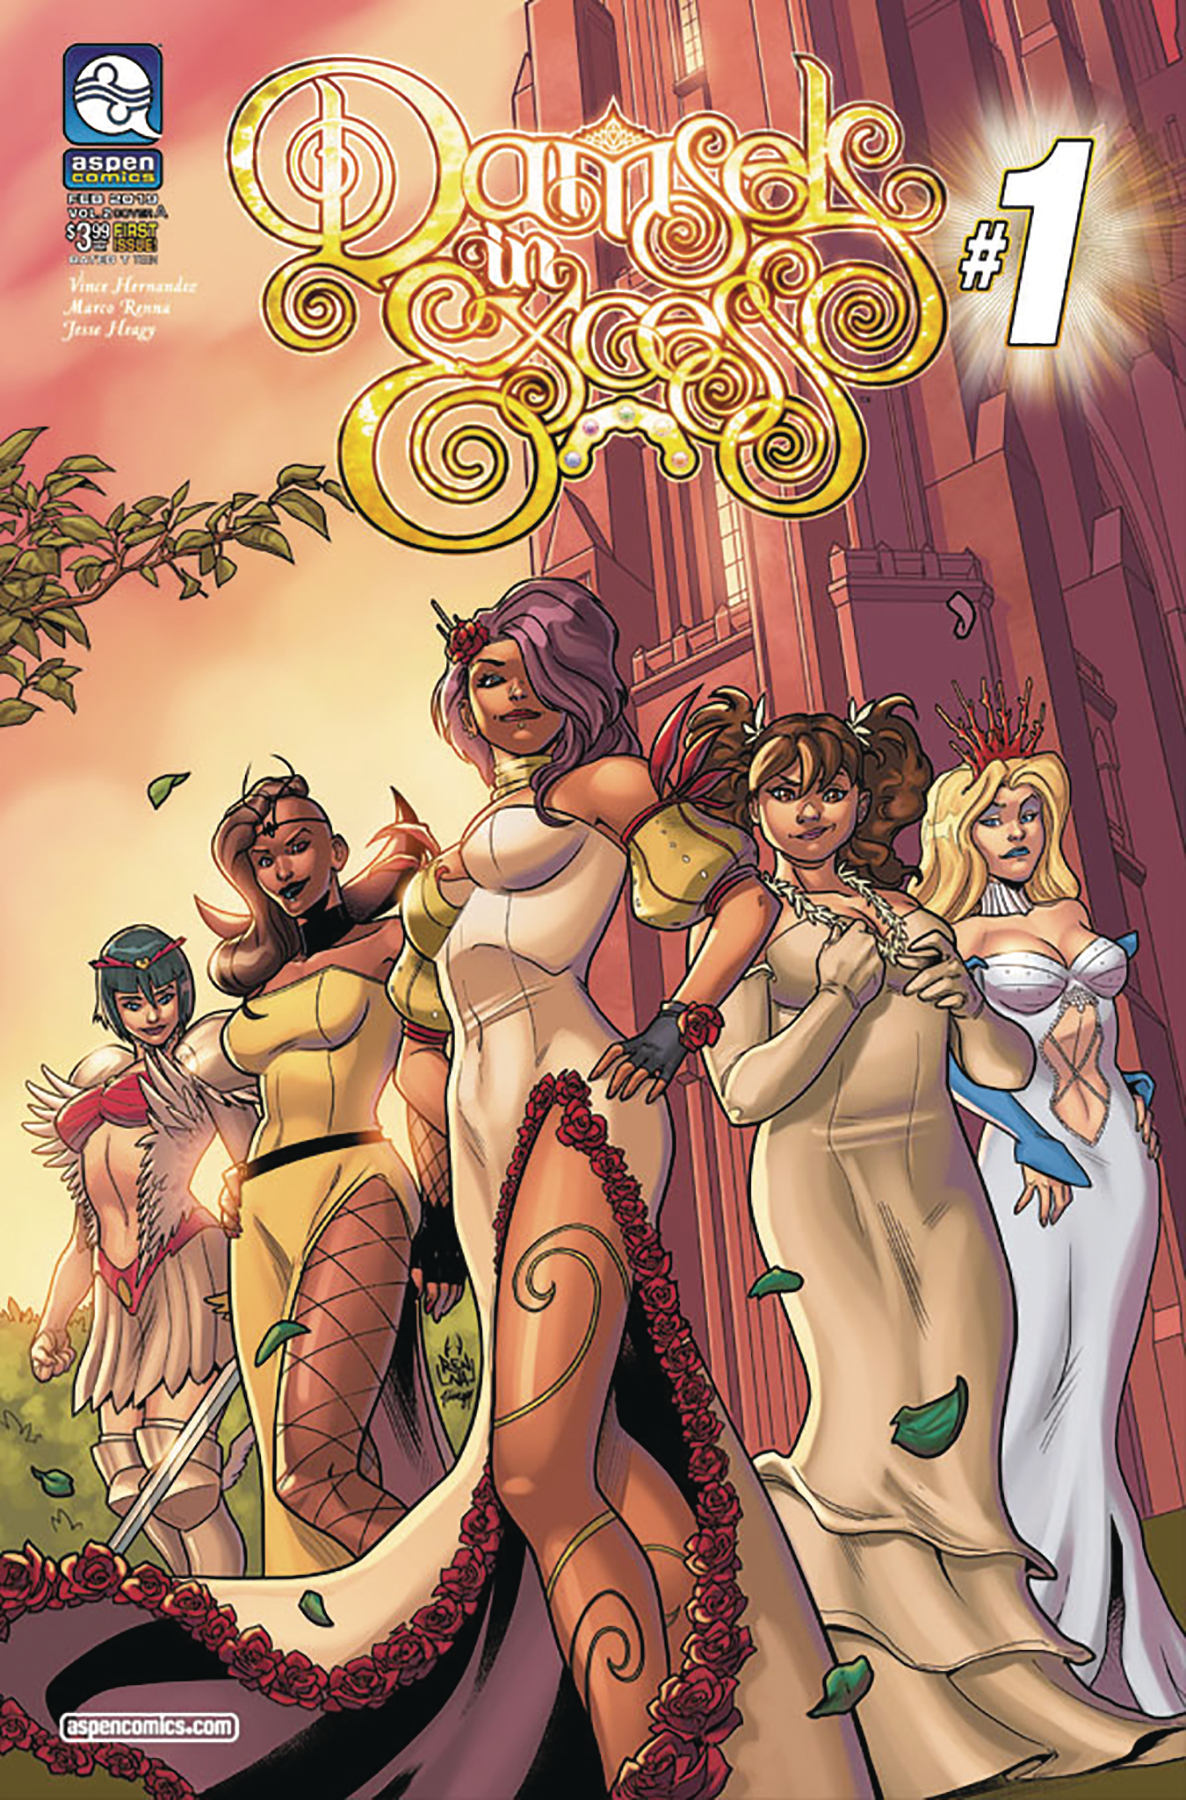 DAMSELS IN EXCESS VOL 2 #1 CVR A RENNA